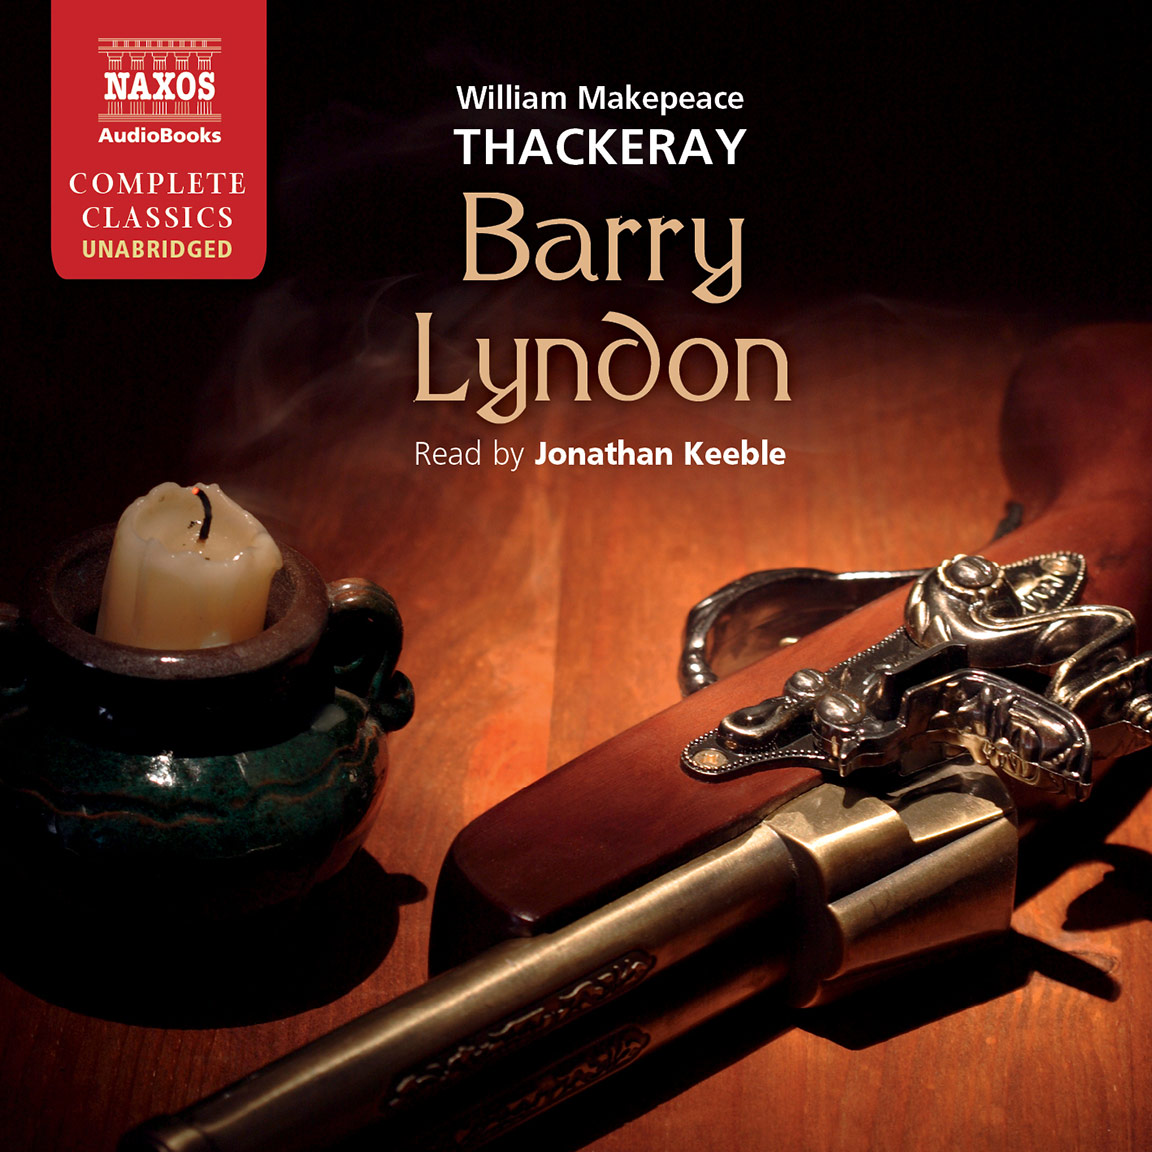 Barry Lyndon (unabridged)